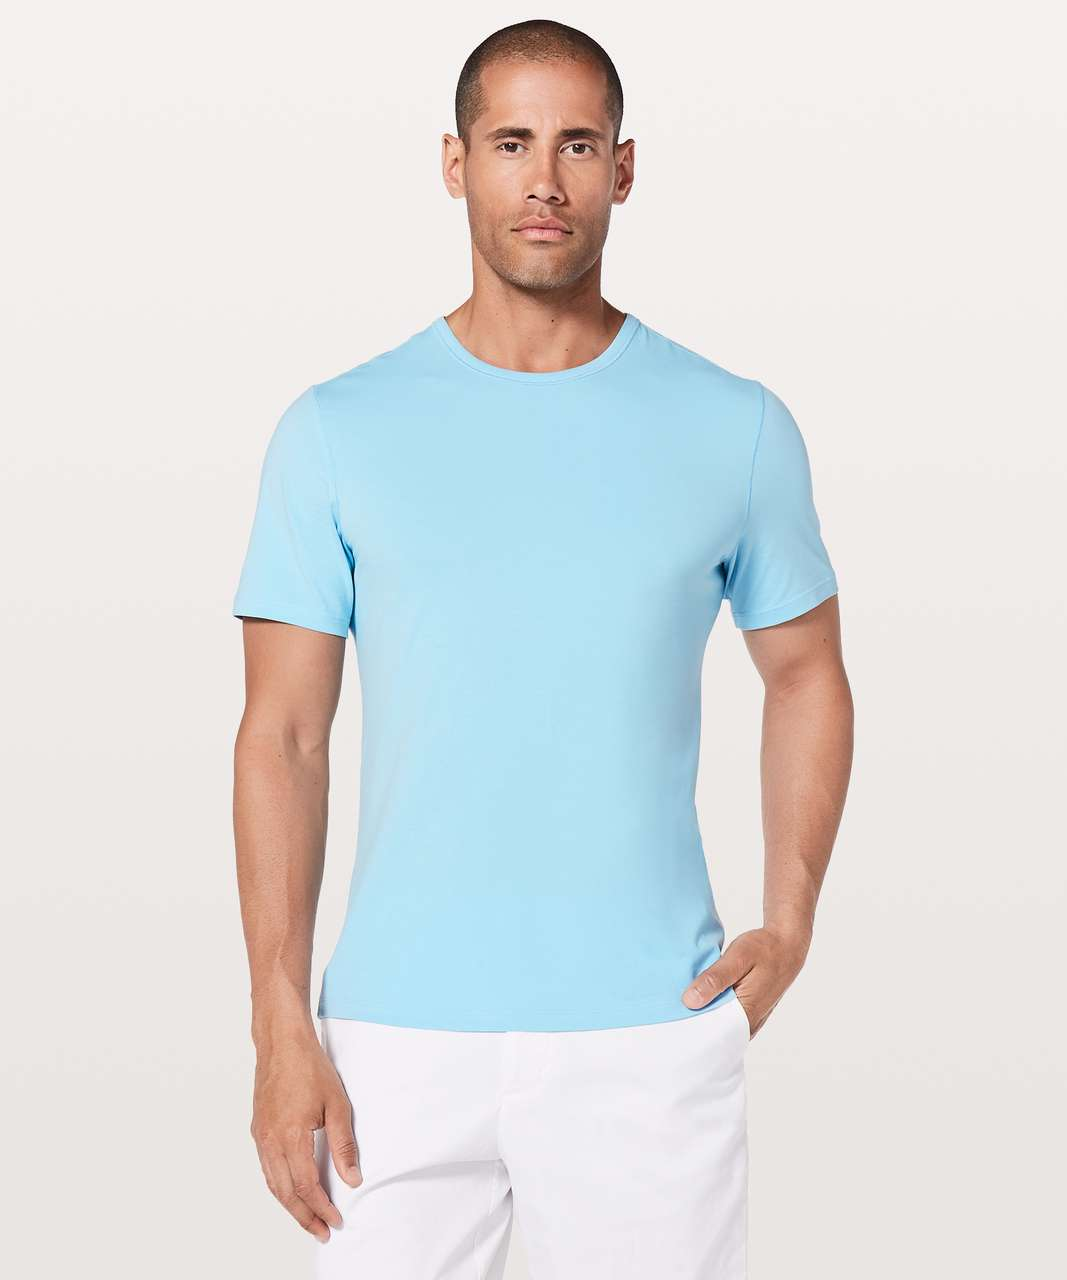 Lululemon 5 Year Basic Tee *Updated Fit - Light Water